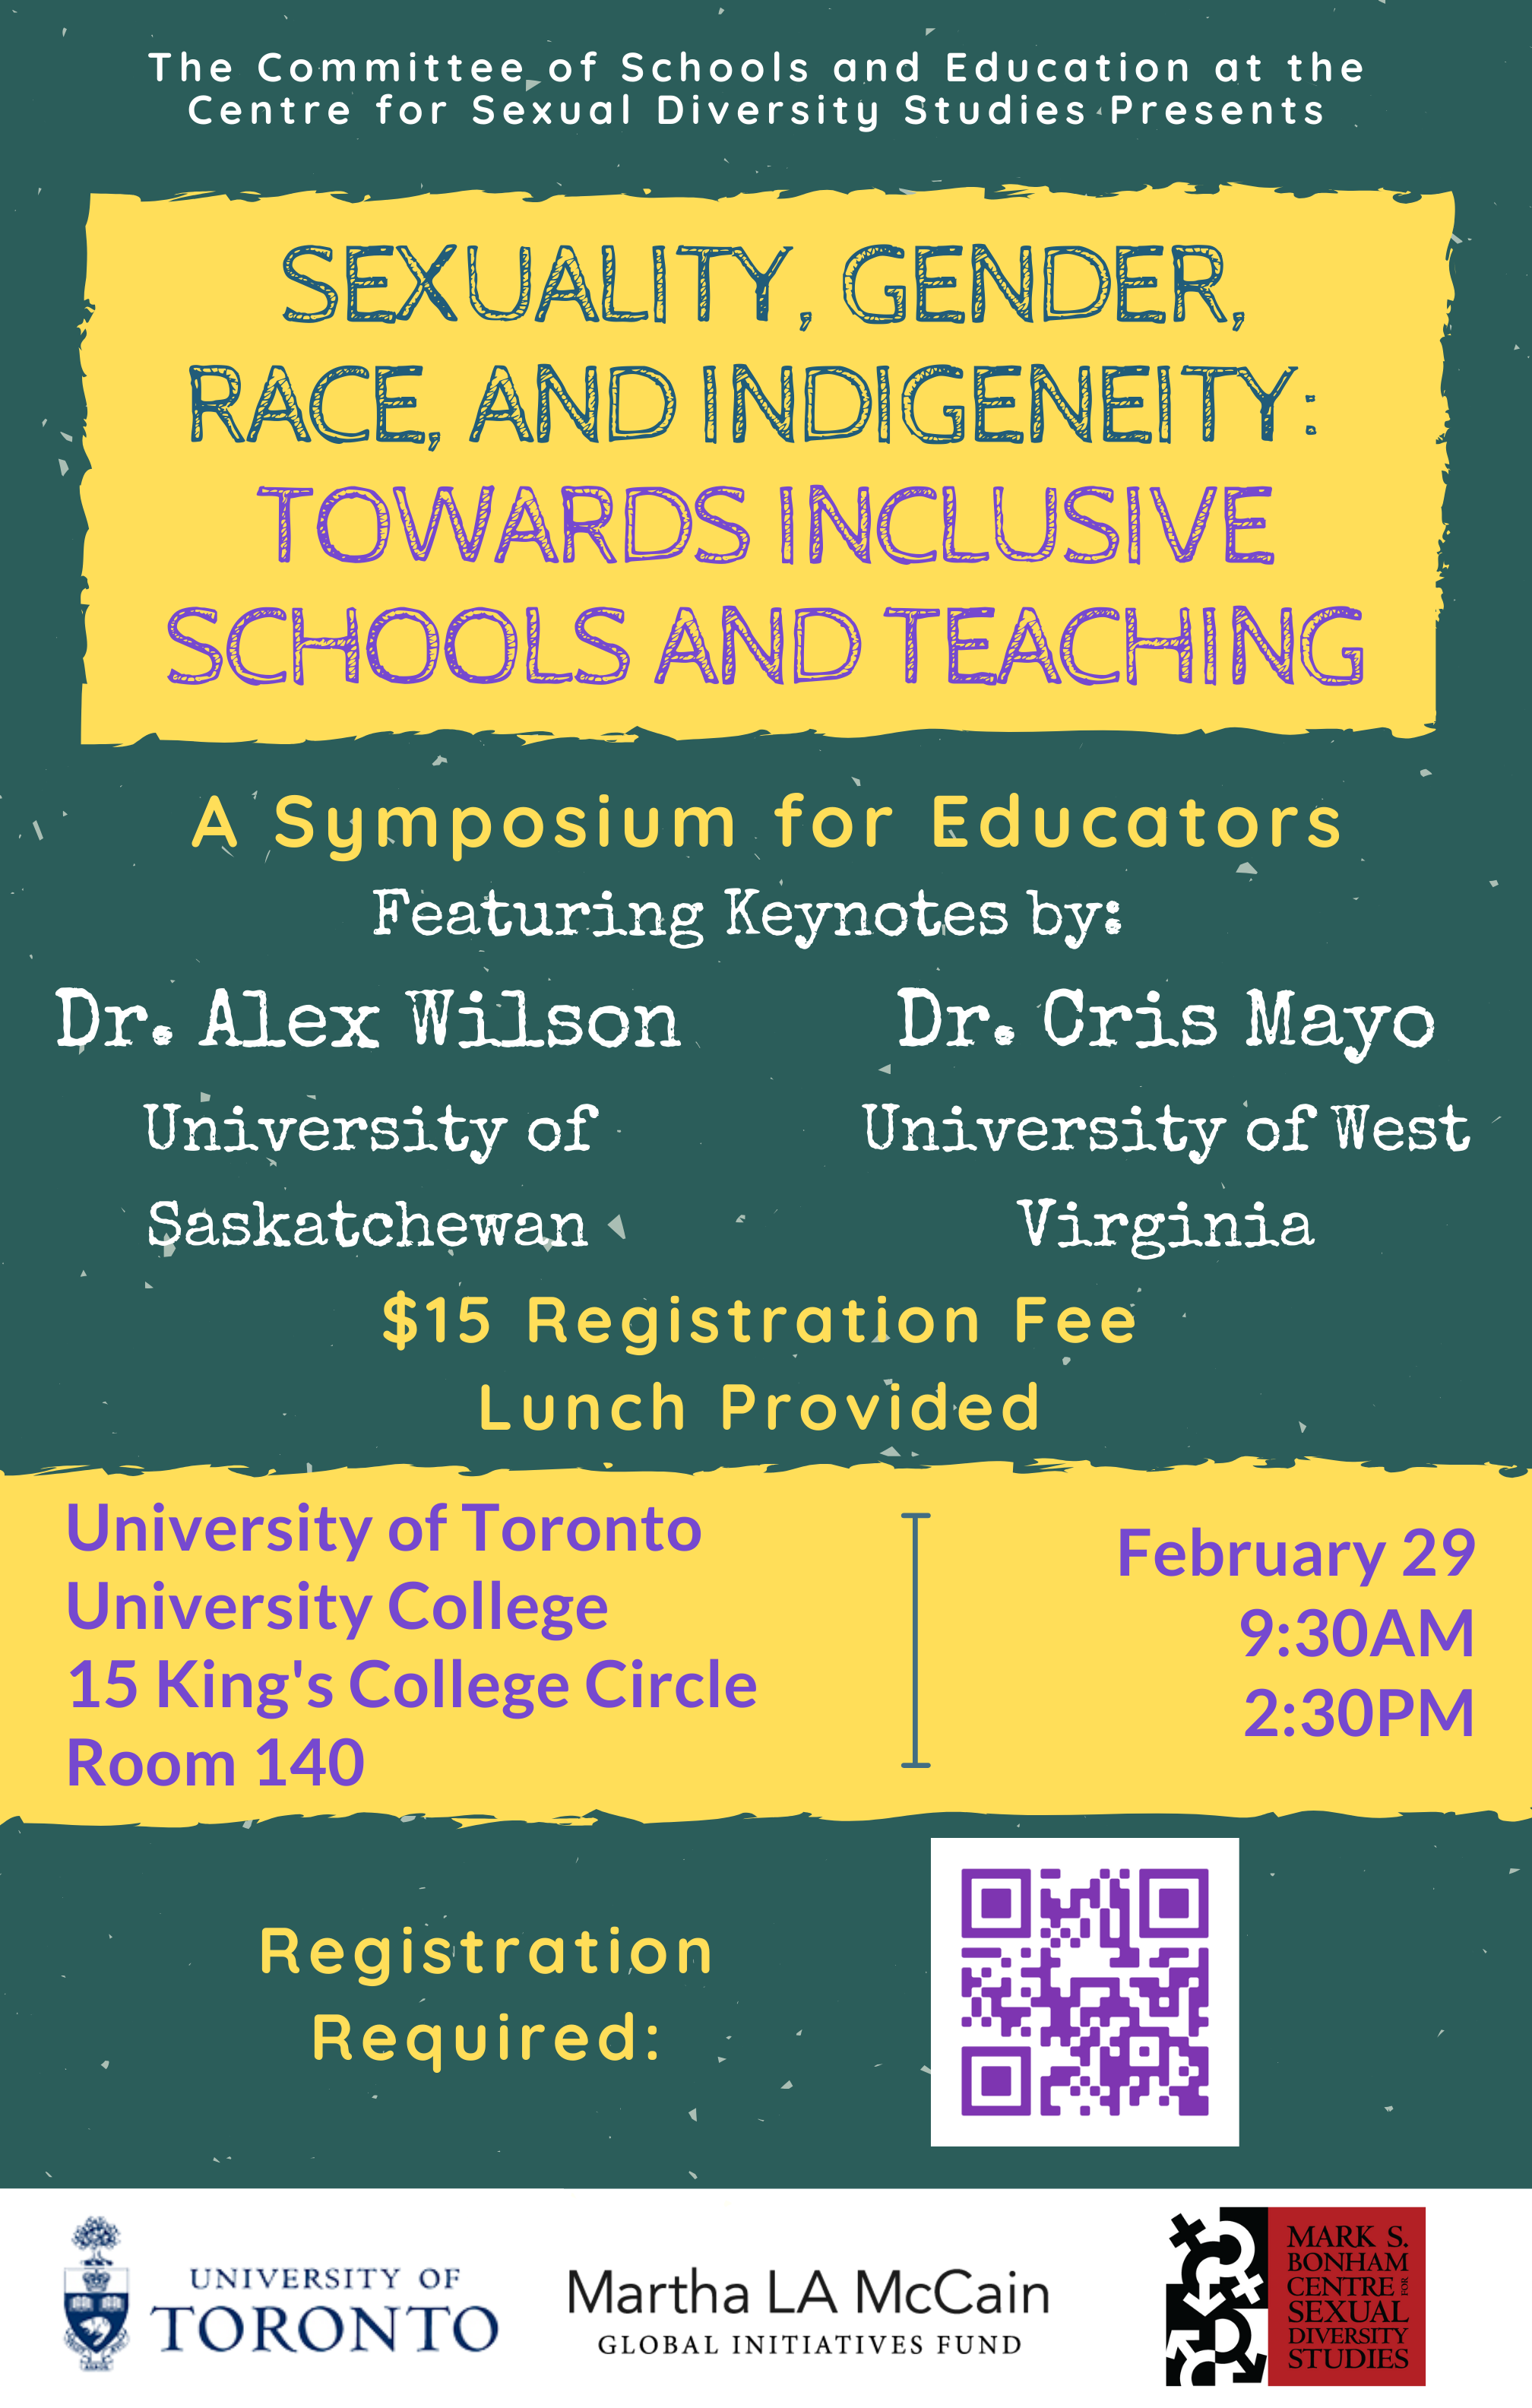 Sexuality, Gender, Race, and Indigeneity: Towards Inclusive Schools and Teaching